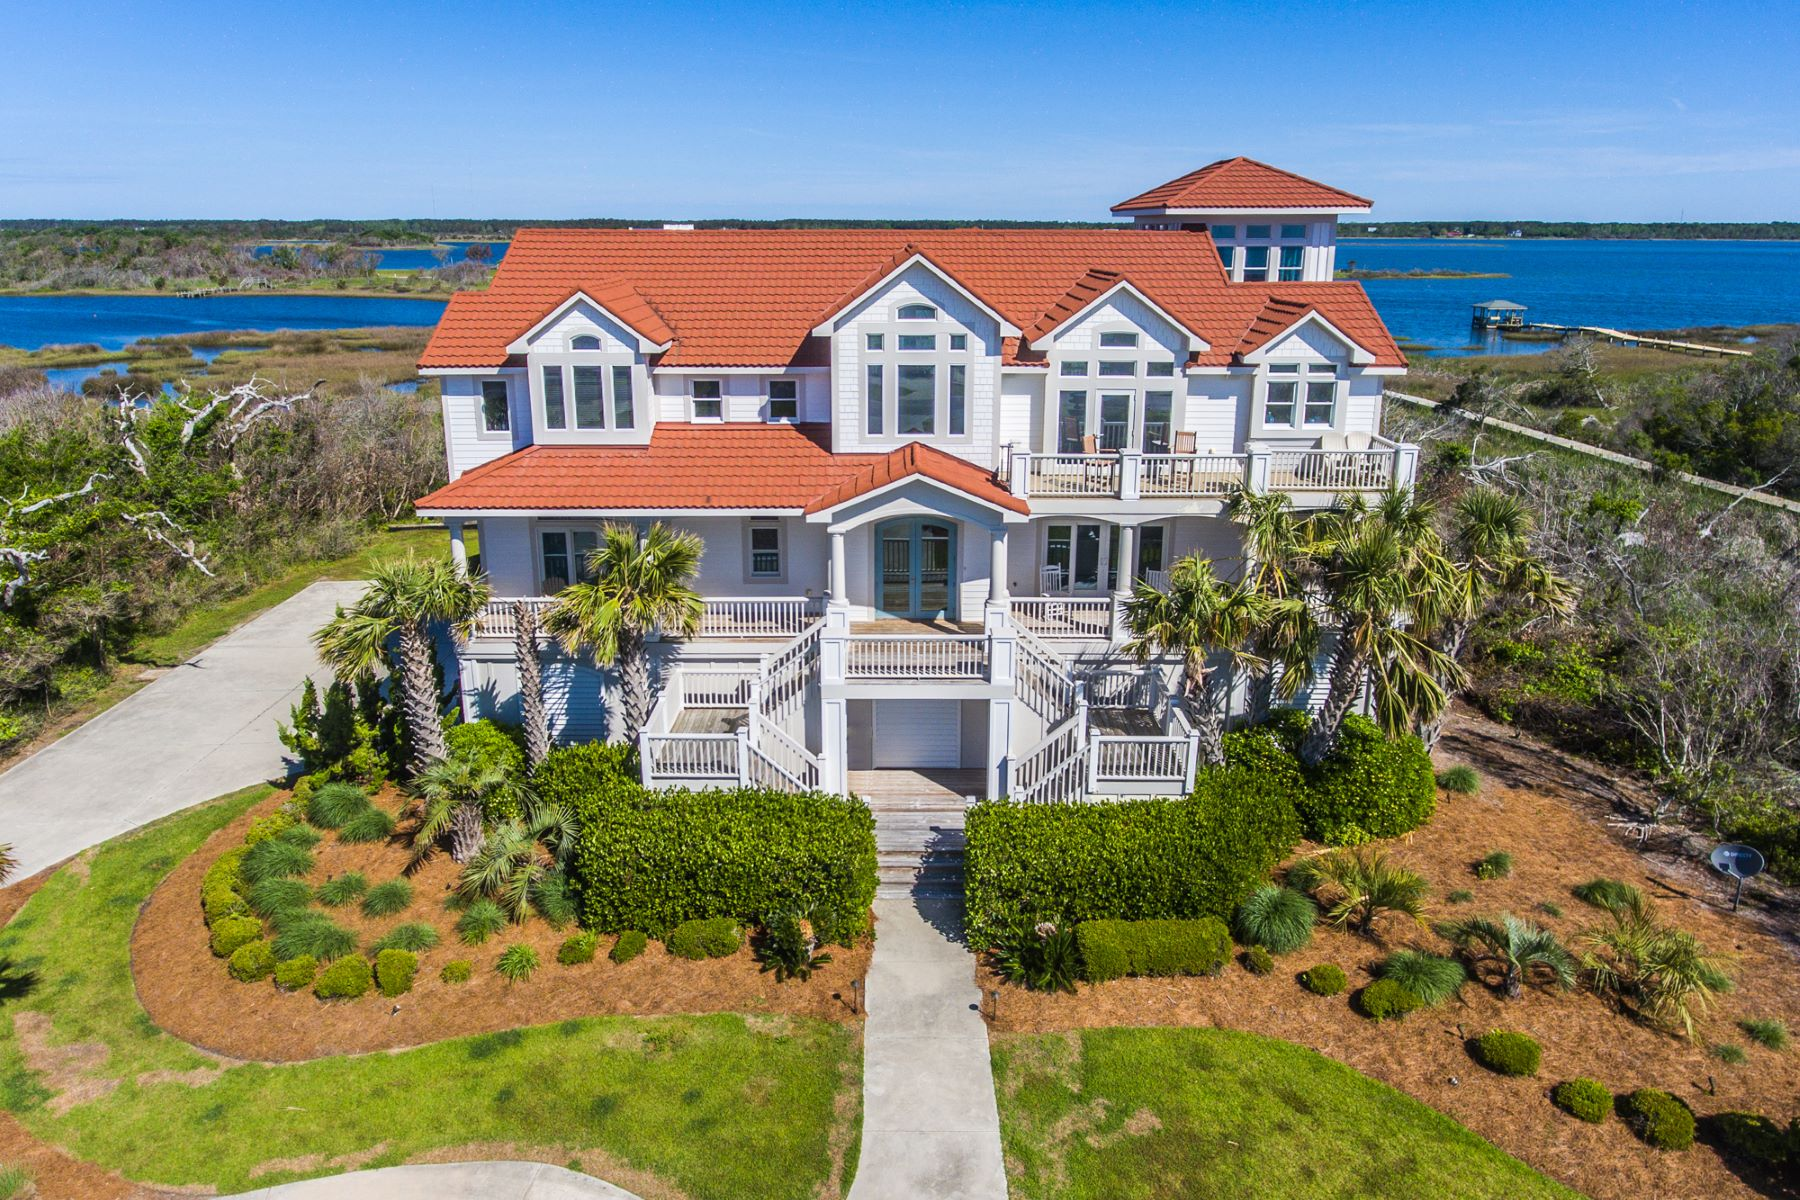 Single Family Homes for Active at Luxurious Sound Front Gem 557 New River Inlet Road N Topsail Beach, North Carolina 28460 United States